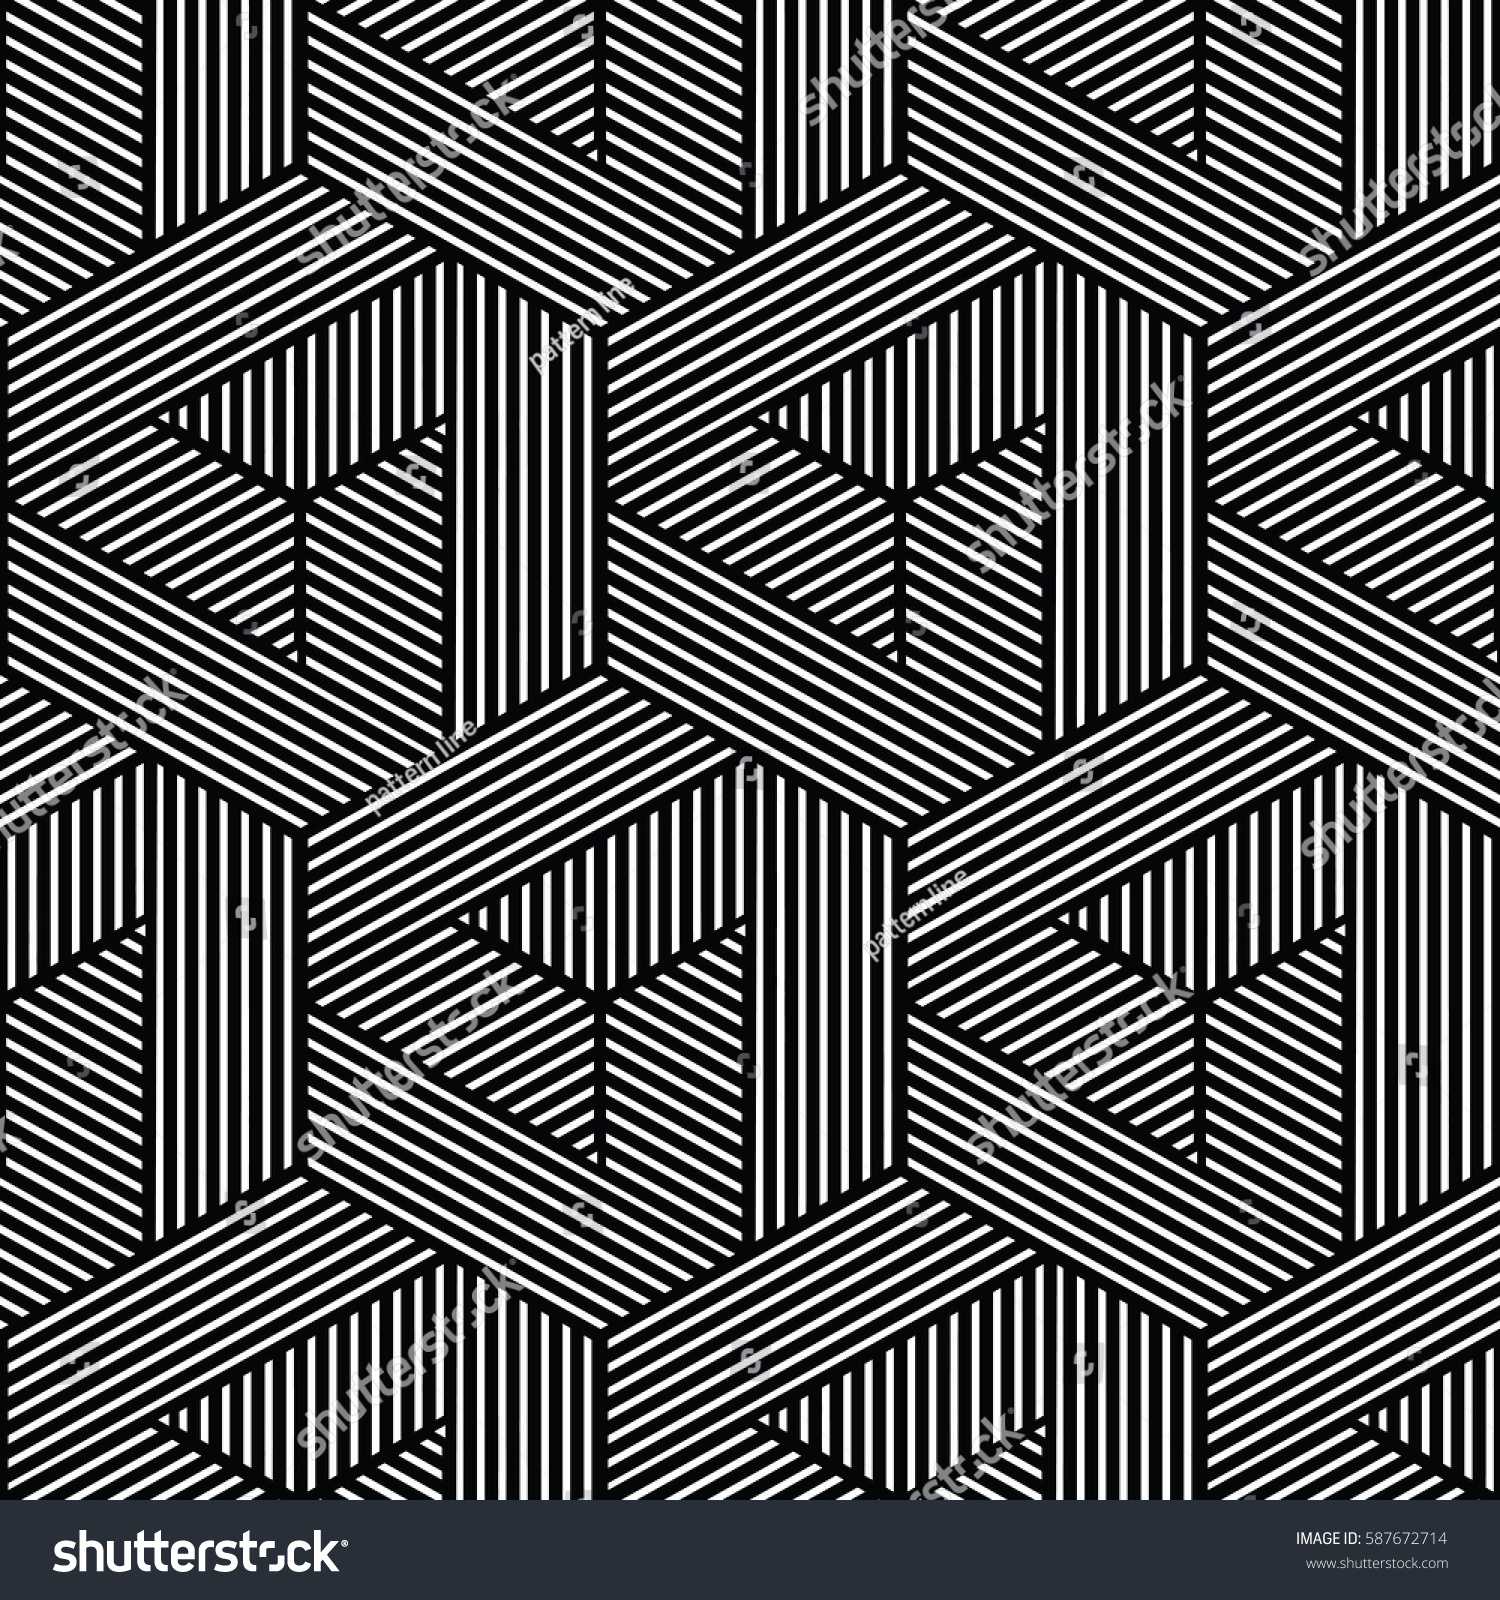 Line Texture Black And White : Black white patternbackground line geometricmodern stylish